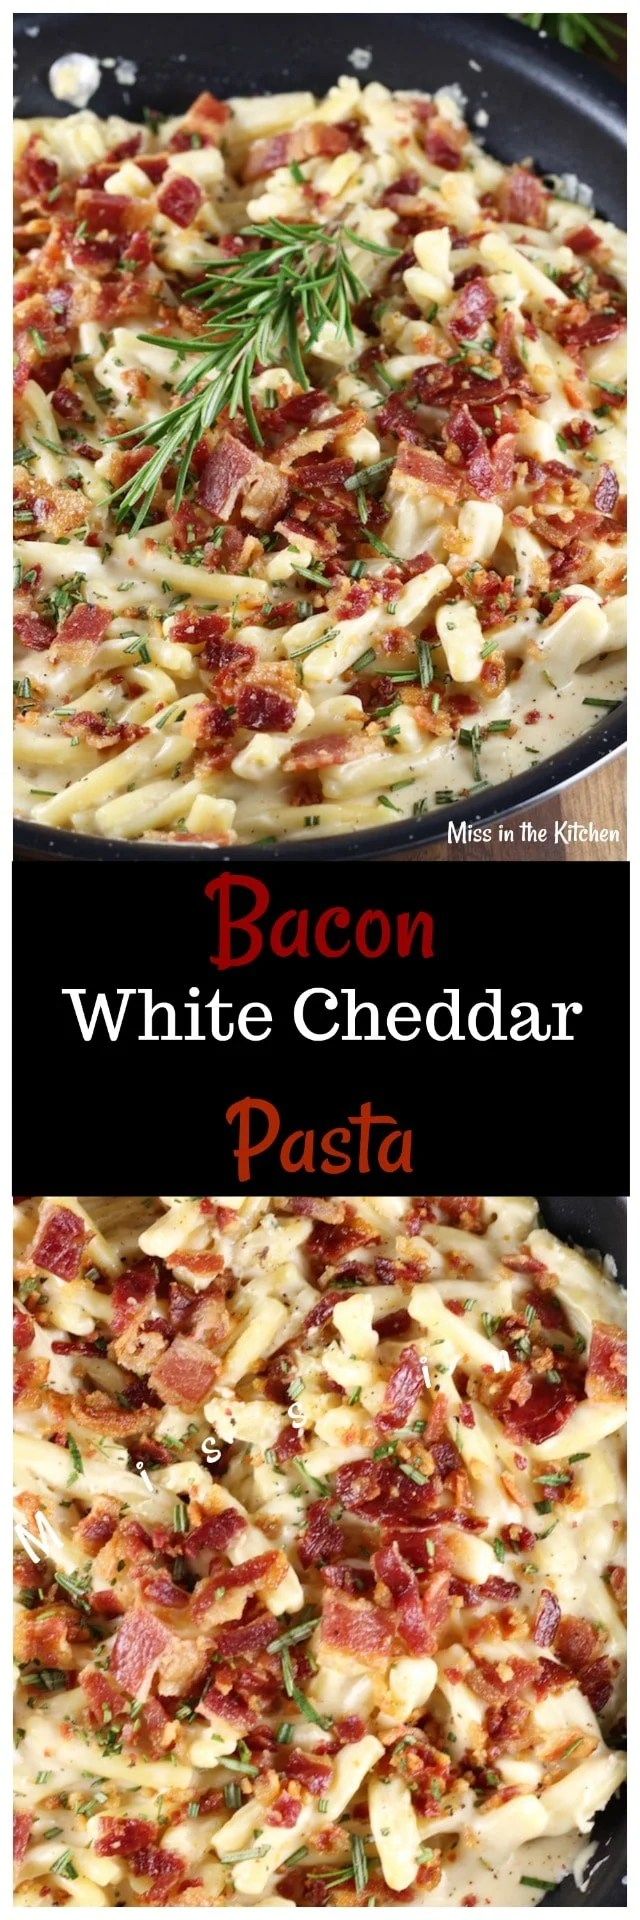 Bacon White Cheddar Pasta Recipe ~ Easy weeknight dinner ~ MissintheKitchen.com